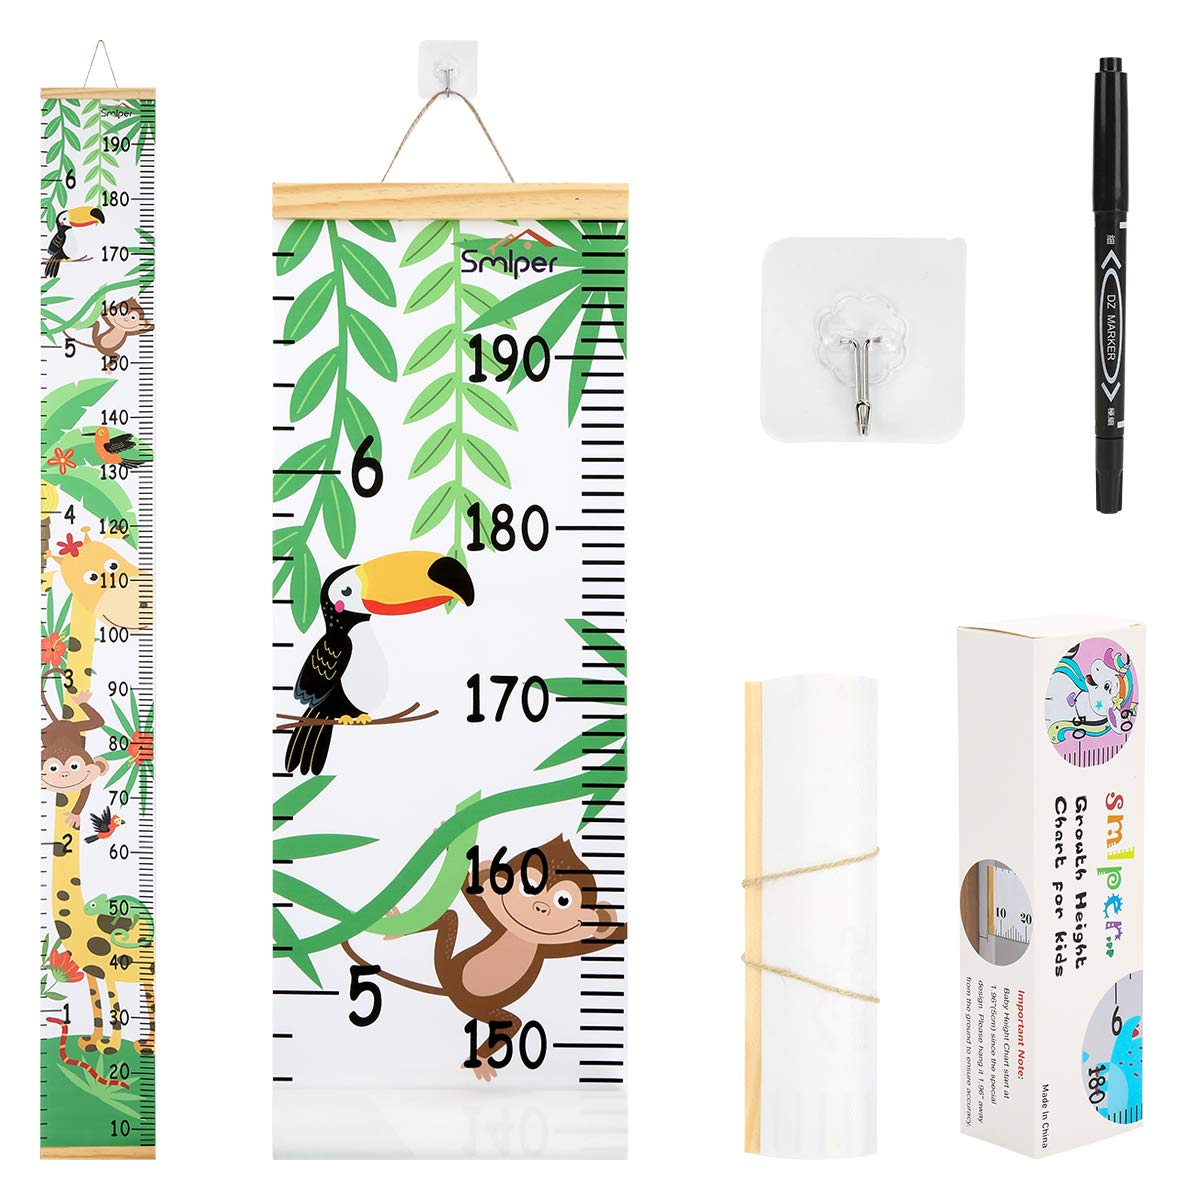 Smlper Growth Chart for Kids,Roll-up Height Chart for Boys Girls,Wood Frame Fabric Canvas Height Measurement Ruler for Kids Nursery Room,Removable Wall Decor 79x7.9